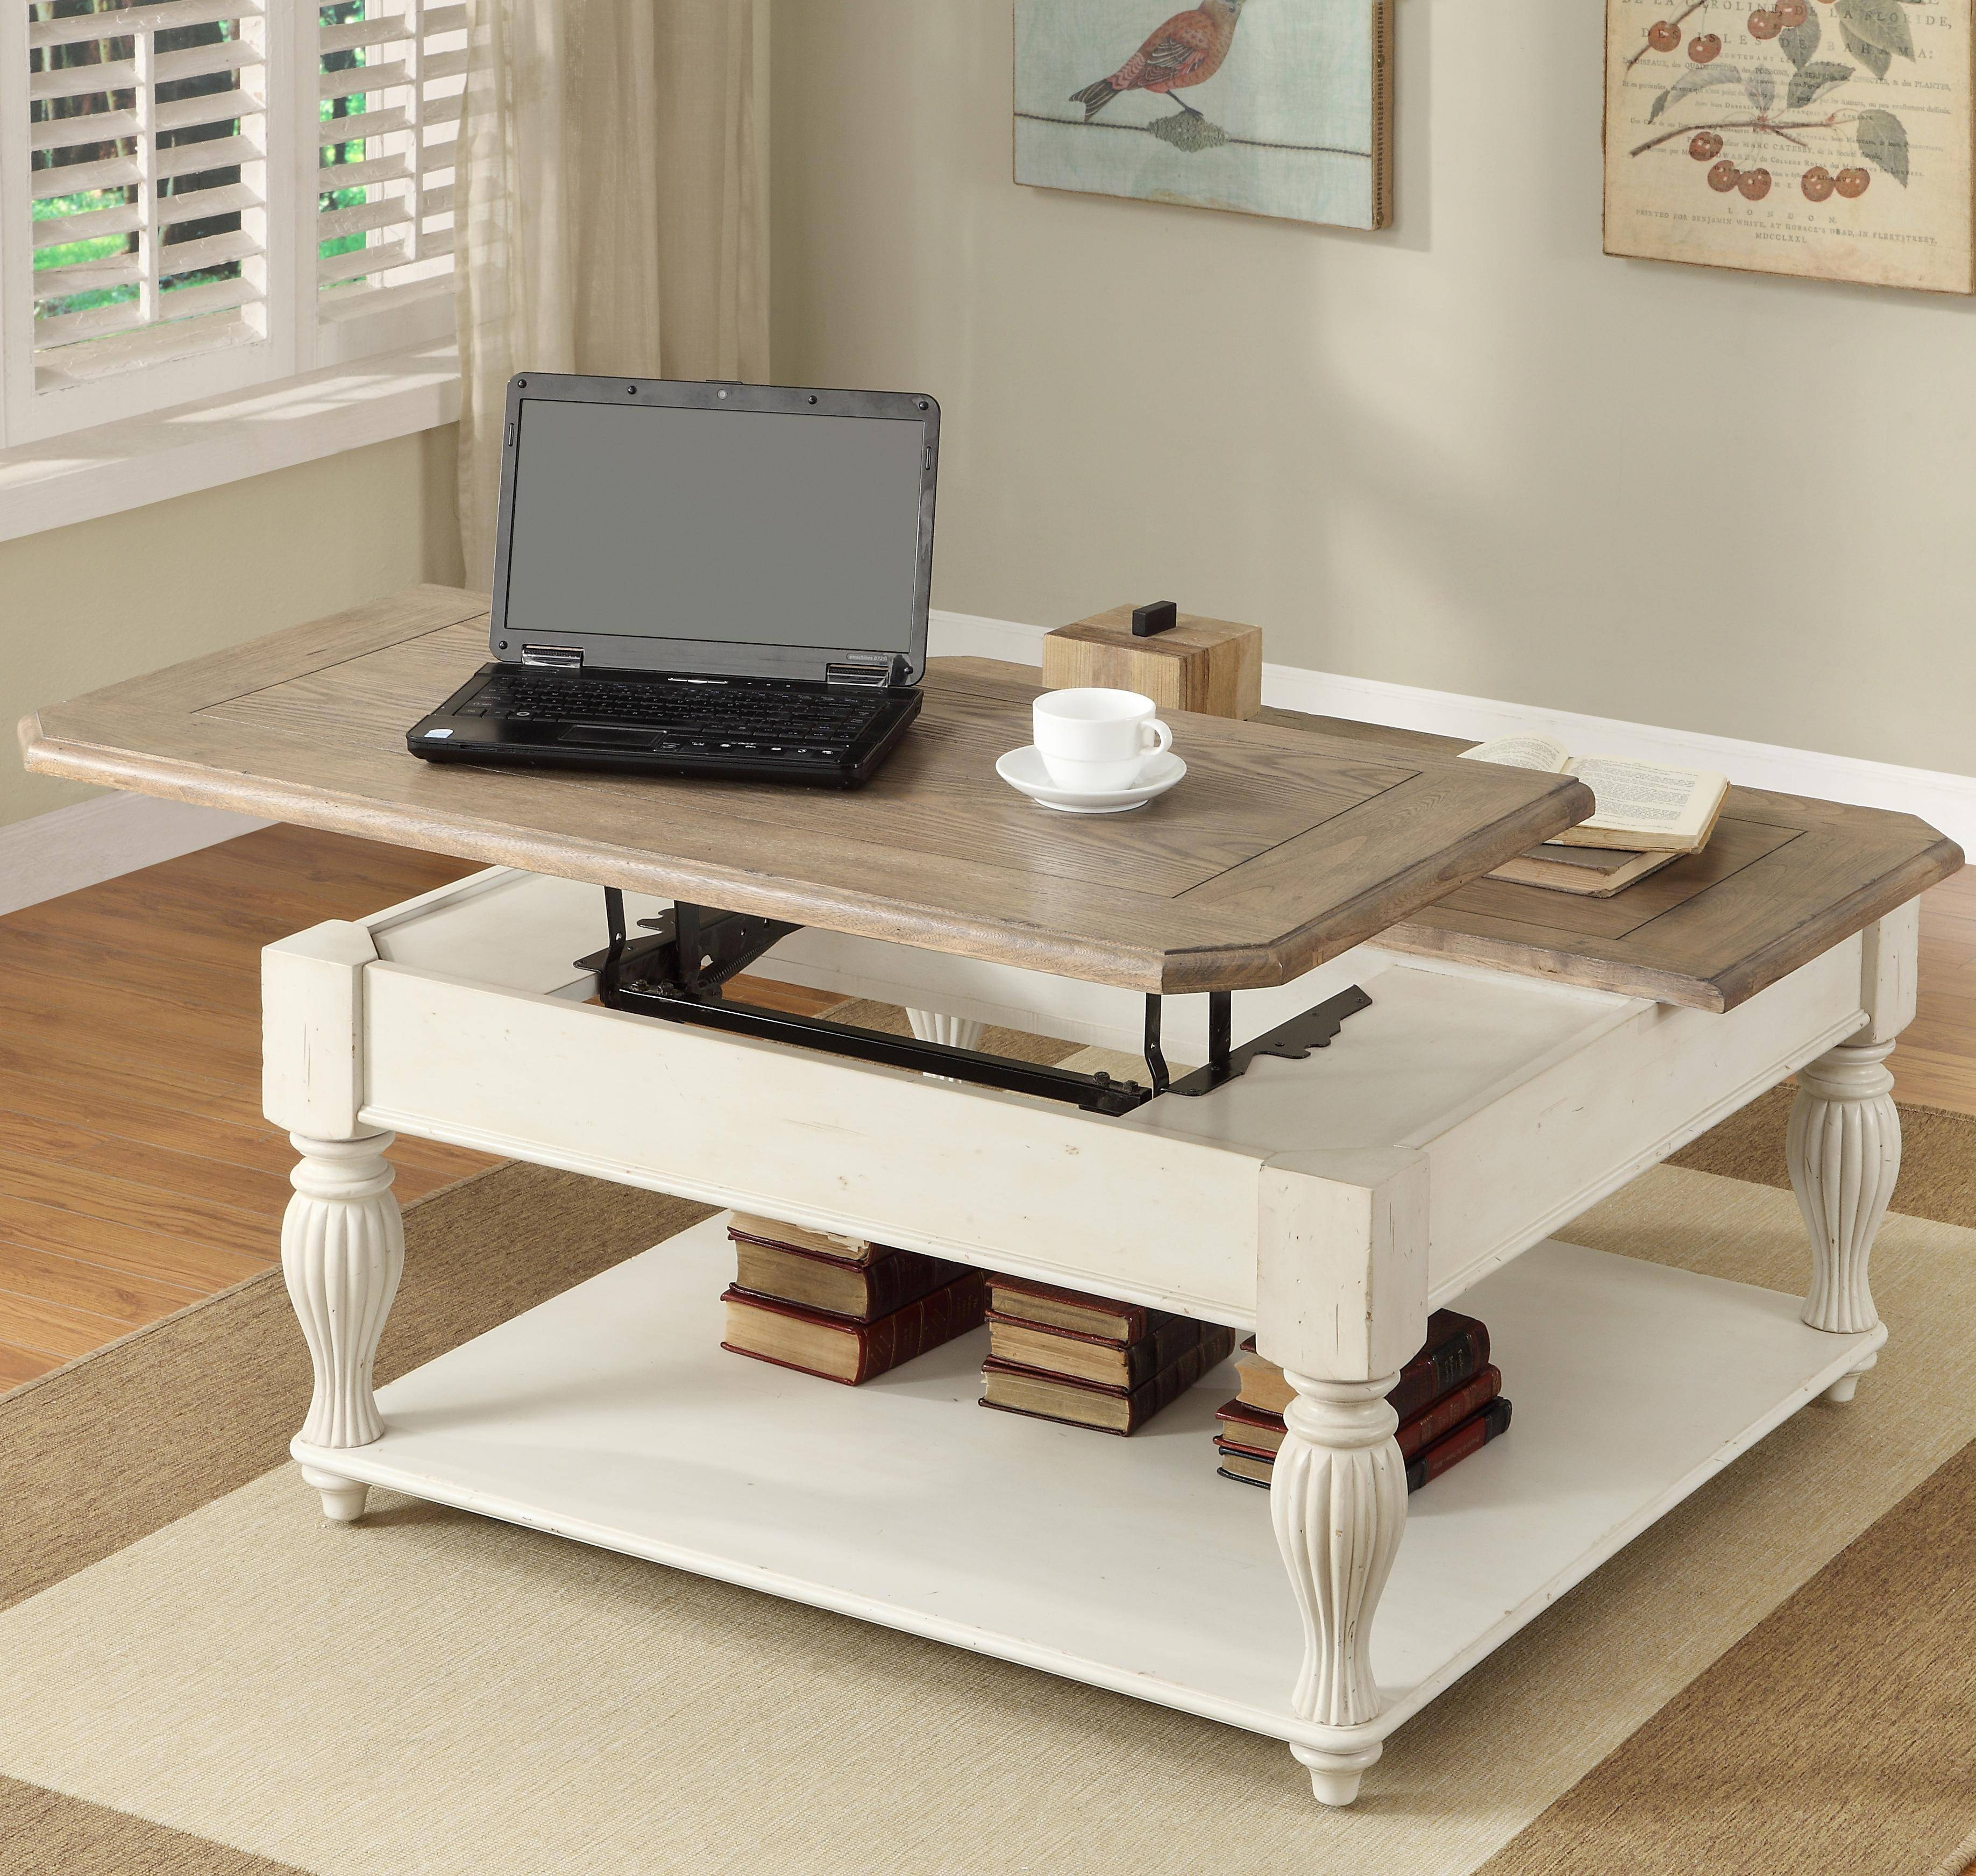 Coffee Table: Excellent Square Lift Top Coffee Table Designs regarding Square Coffee Tables With Storages (Image 7 of 30)